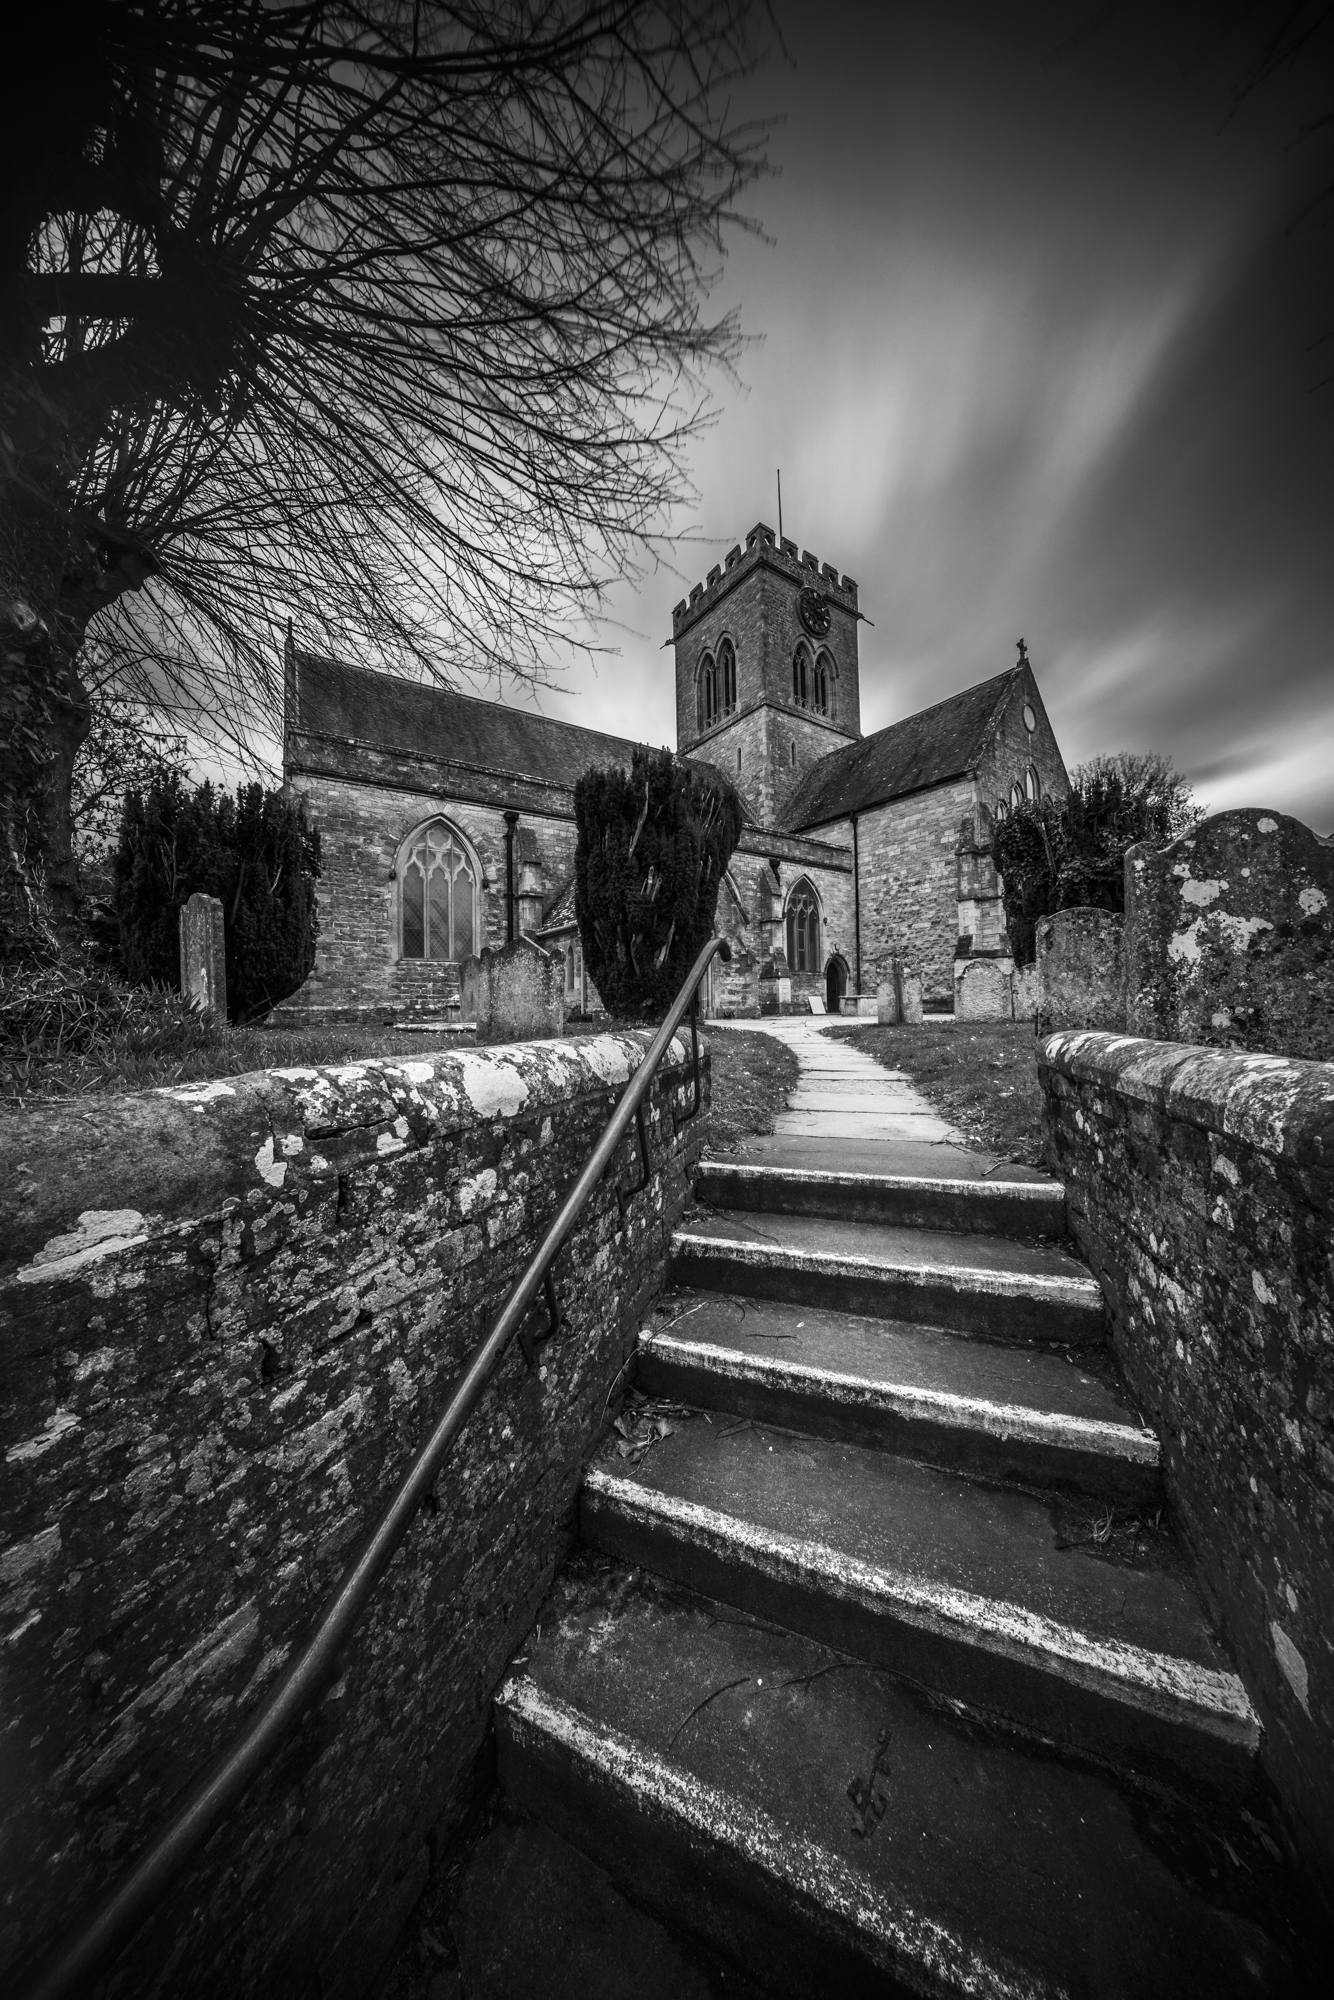 30 seconds - Ringwood Church, Hampshire